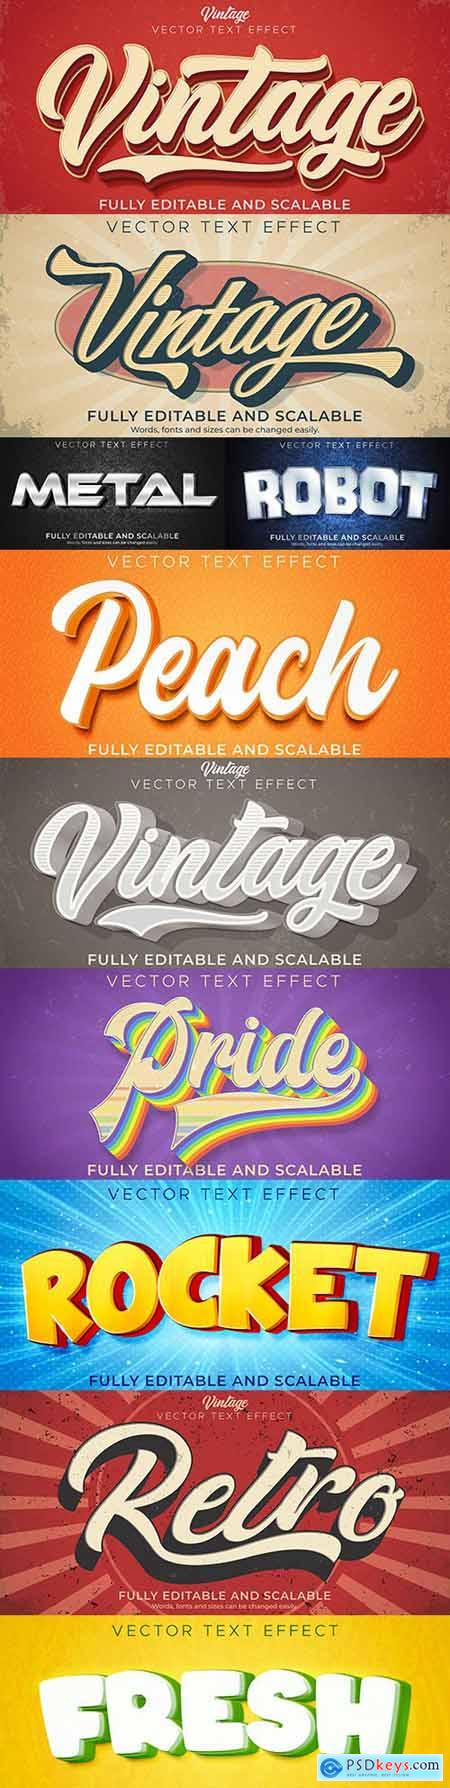 Editable font and 3d effect text design collection illustration 31